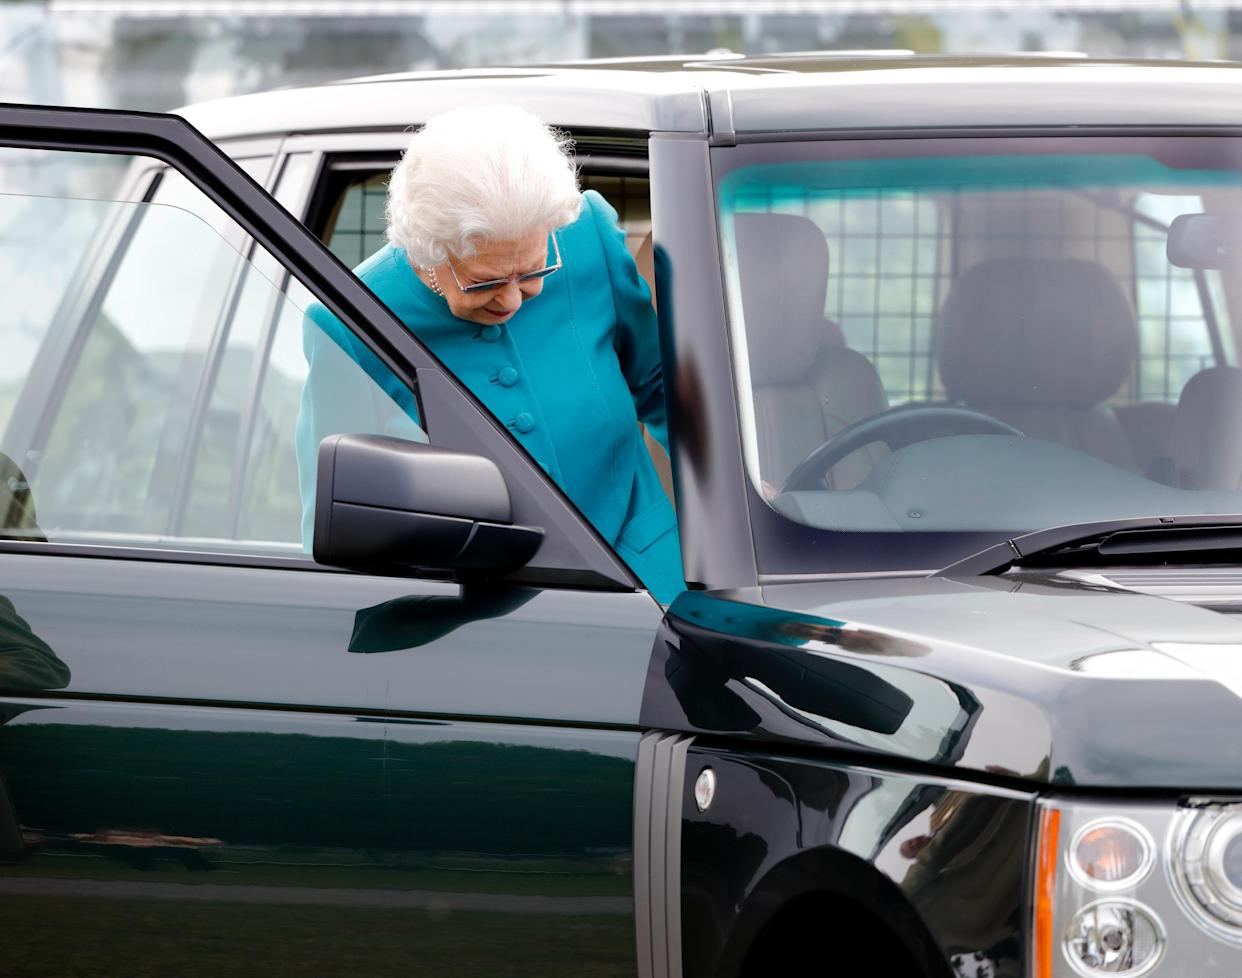 WINDSOR, UNITED KINGDOM - JULY 01: (EMBARGOED FOR PUBLICATION IN UK NEWSPAPERS UNTIL 24 HOURS AFTER CREATE DATE AND TIME) Queen Elizabeth II seen getting into her Range Rover car as she attends day 1 of the Royal Windsor Horse Show in Home Park, Windsor Castle on July 1, 2021 in Windsor, England. (Photo by Max Mumby/Indigo/Getty Images)